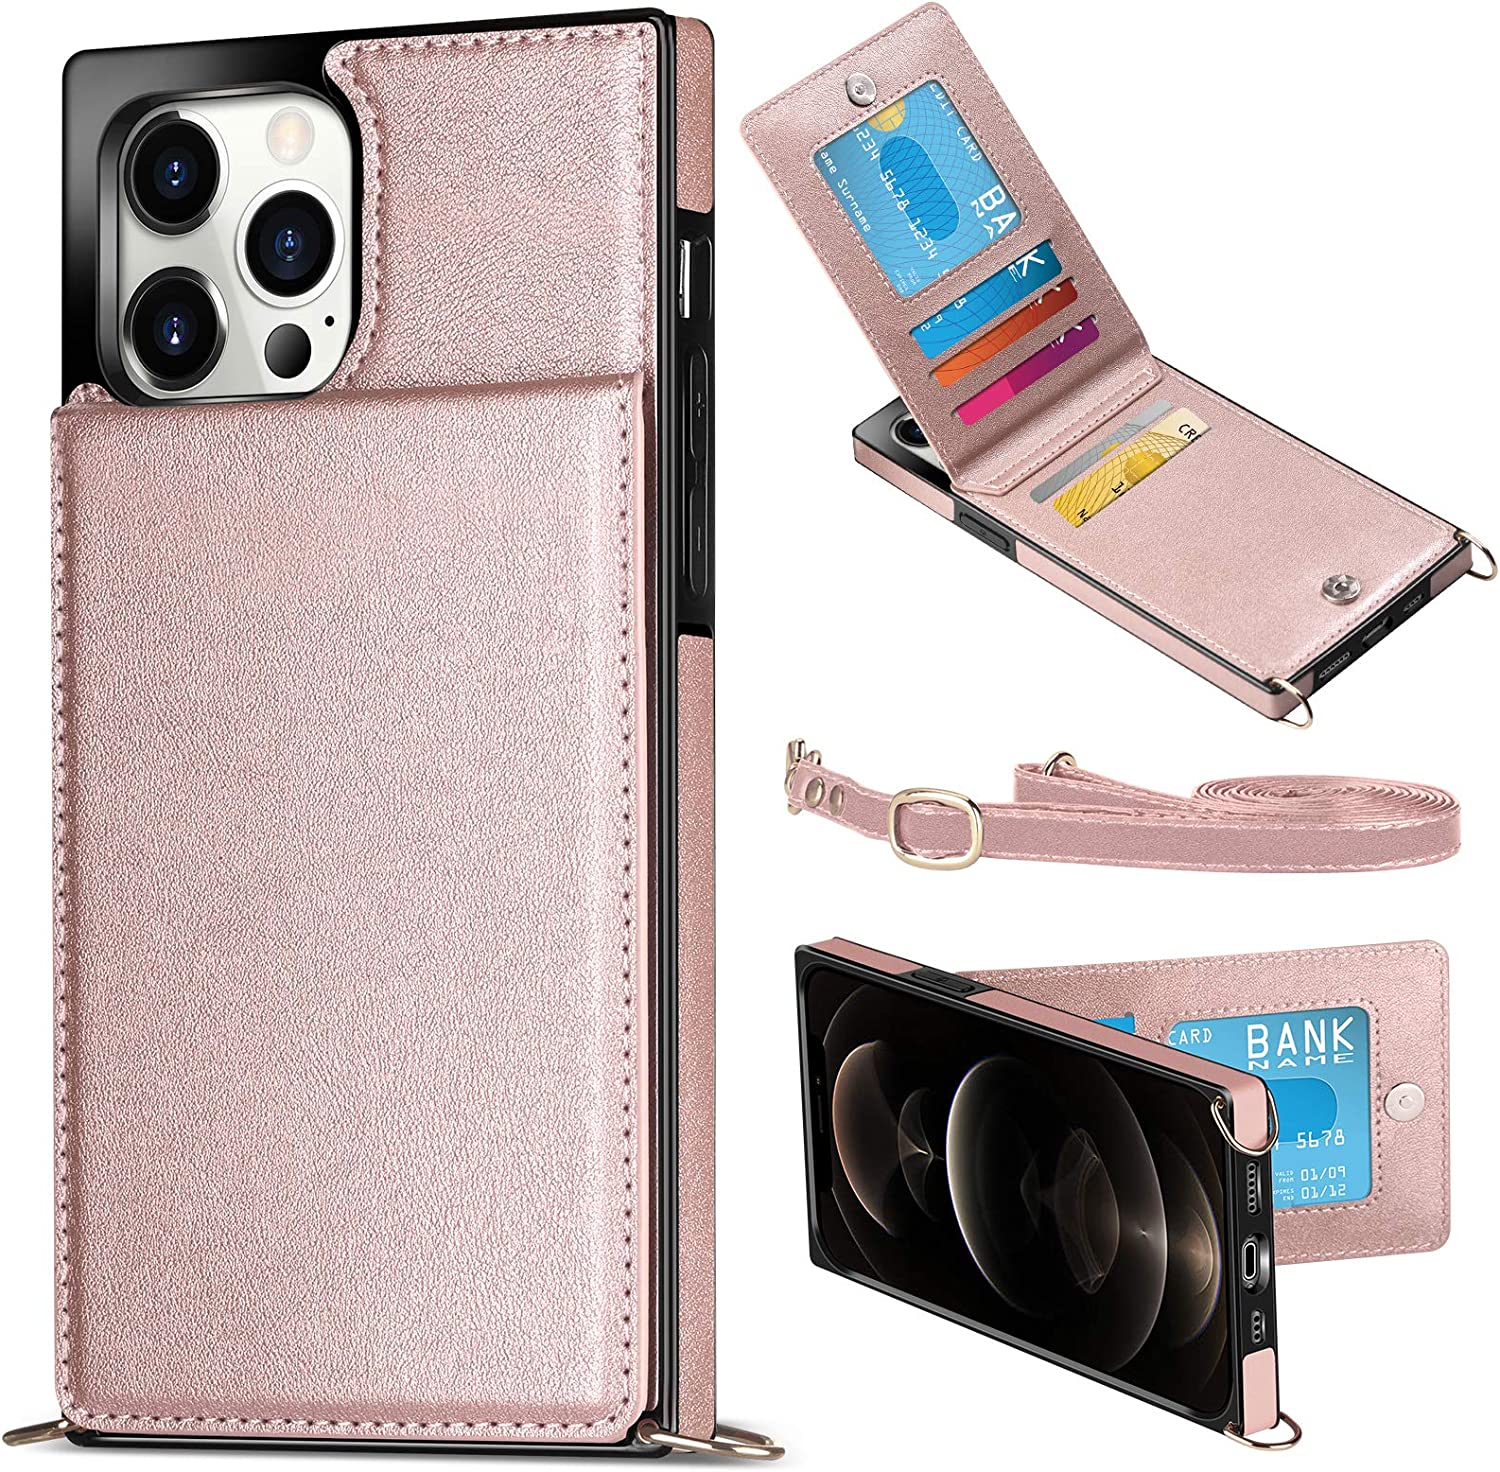 WESADN Compatible with iPhone 12 Pro Max Case Wallet Leather Girls Women Card Holder Slot Pocket Kickstand Case with Crossbody Strap Lanyard Slim Protective Magnetic Closure Purse Case Rose Gold